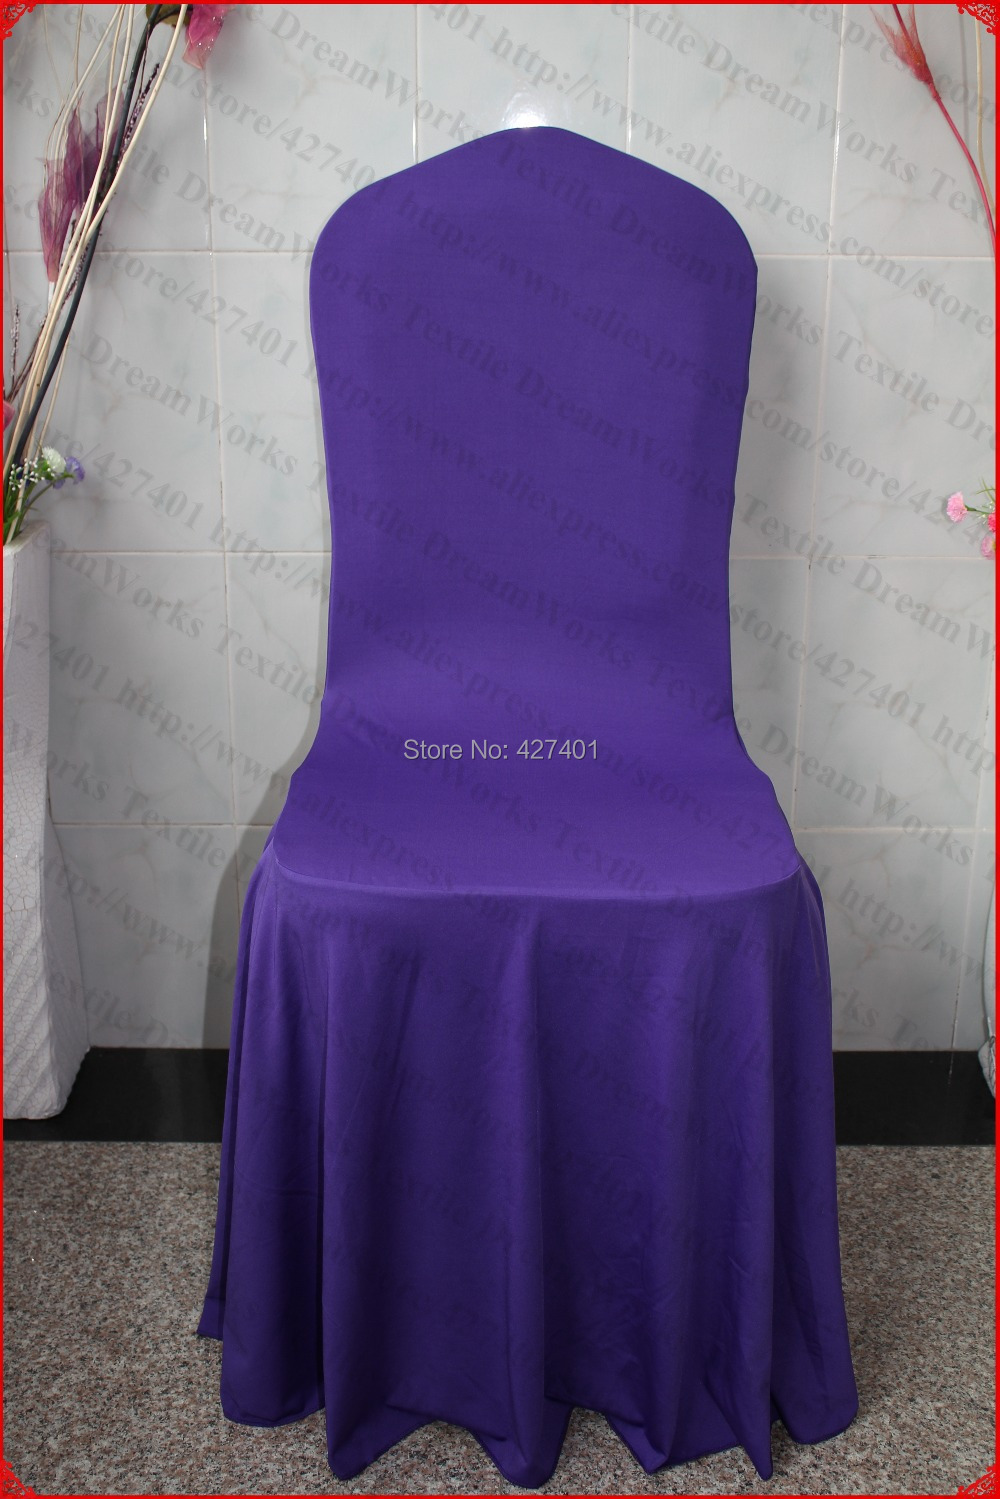 lycra chair covers nz posh and bows dark purple elegant pleated swag spandex cover backdrop for wedding party banquet home decorations in from garden